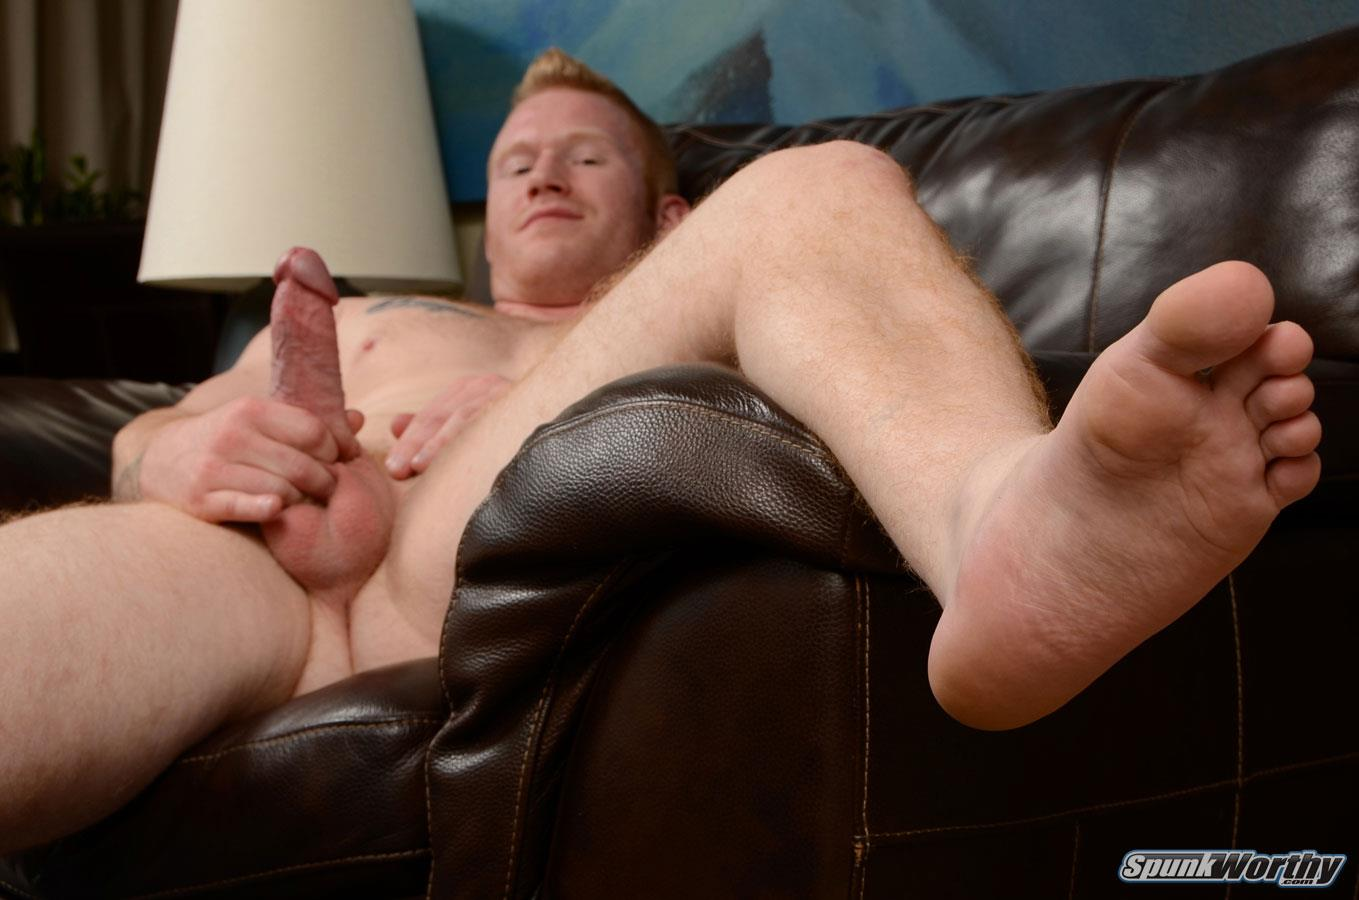 SpunkWorthy-Perry-Straight-Redhead-With-A-Big-Cock-Jerking-Off-Amateur-Gay-Porn-16 Straight Hunky Redhead Jerking Off His Big Ginger Cock